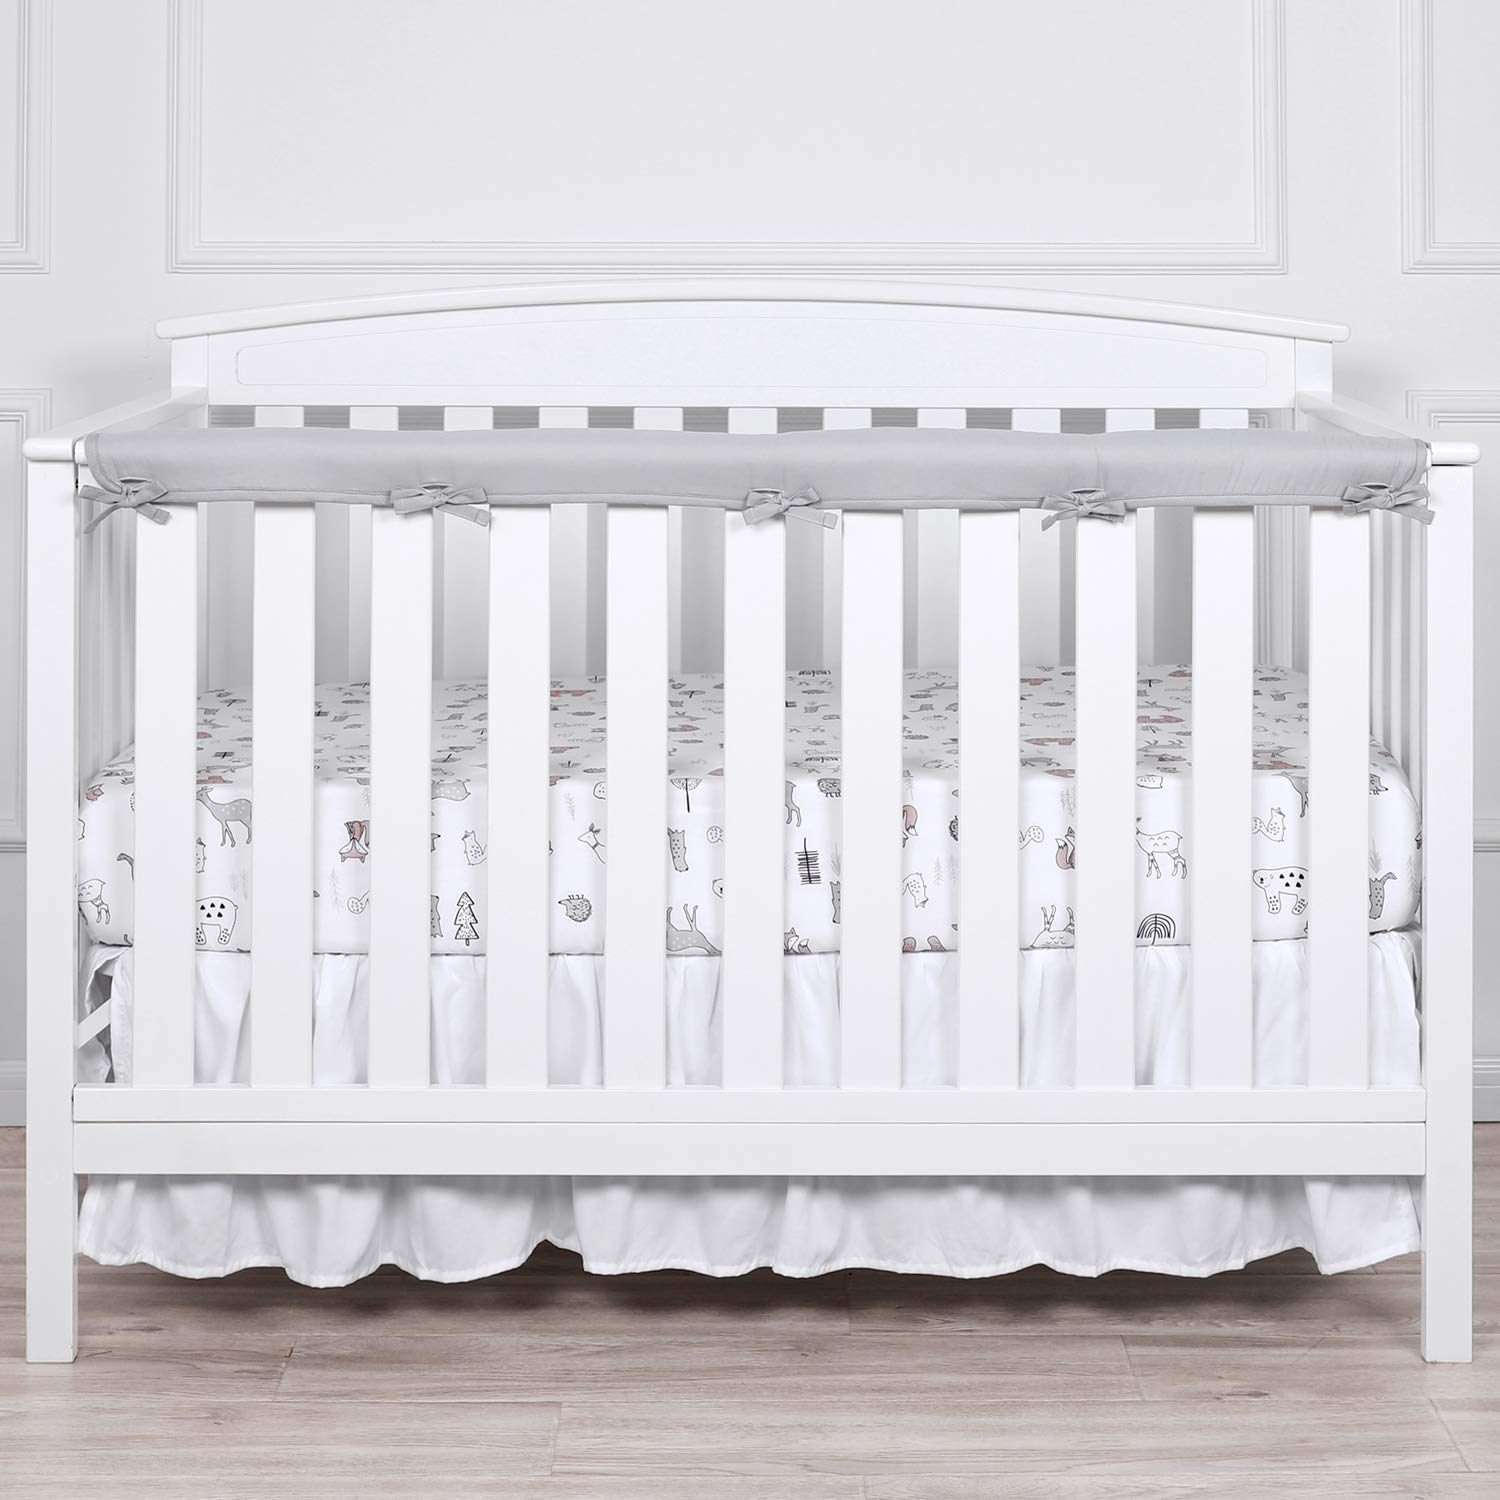 """TILLYOU 1-Pack Padded Baby Crib Rail Cover Protector Safe Teething Guard Wrap for Long Front Crib Rails(Measuring Up to 8"""" Around), 100% Silky Soft Microfiber Polyester, Reversible, White/Pale Gray"""